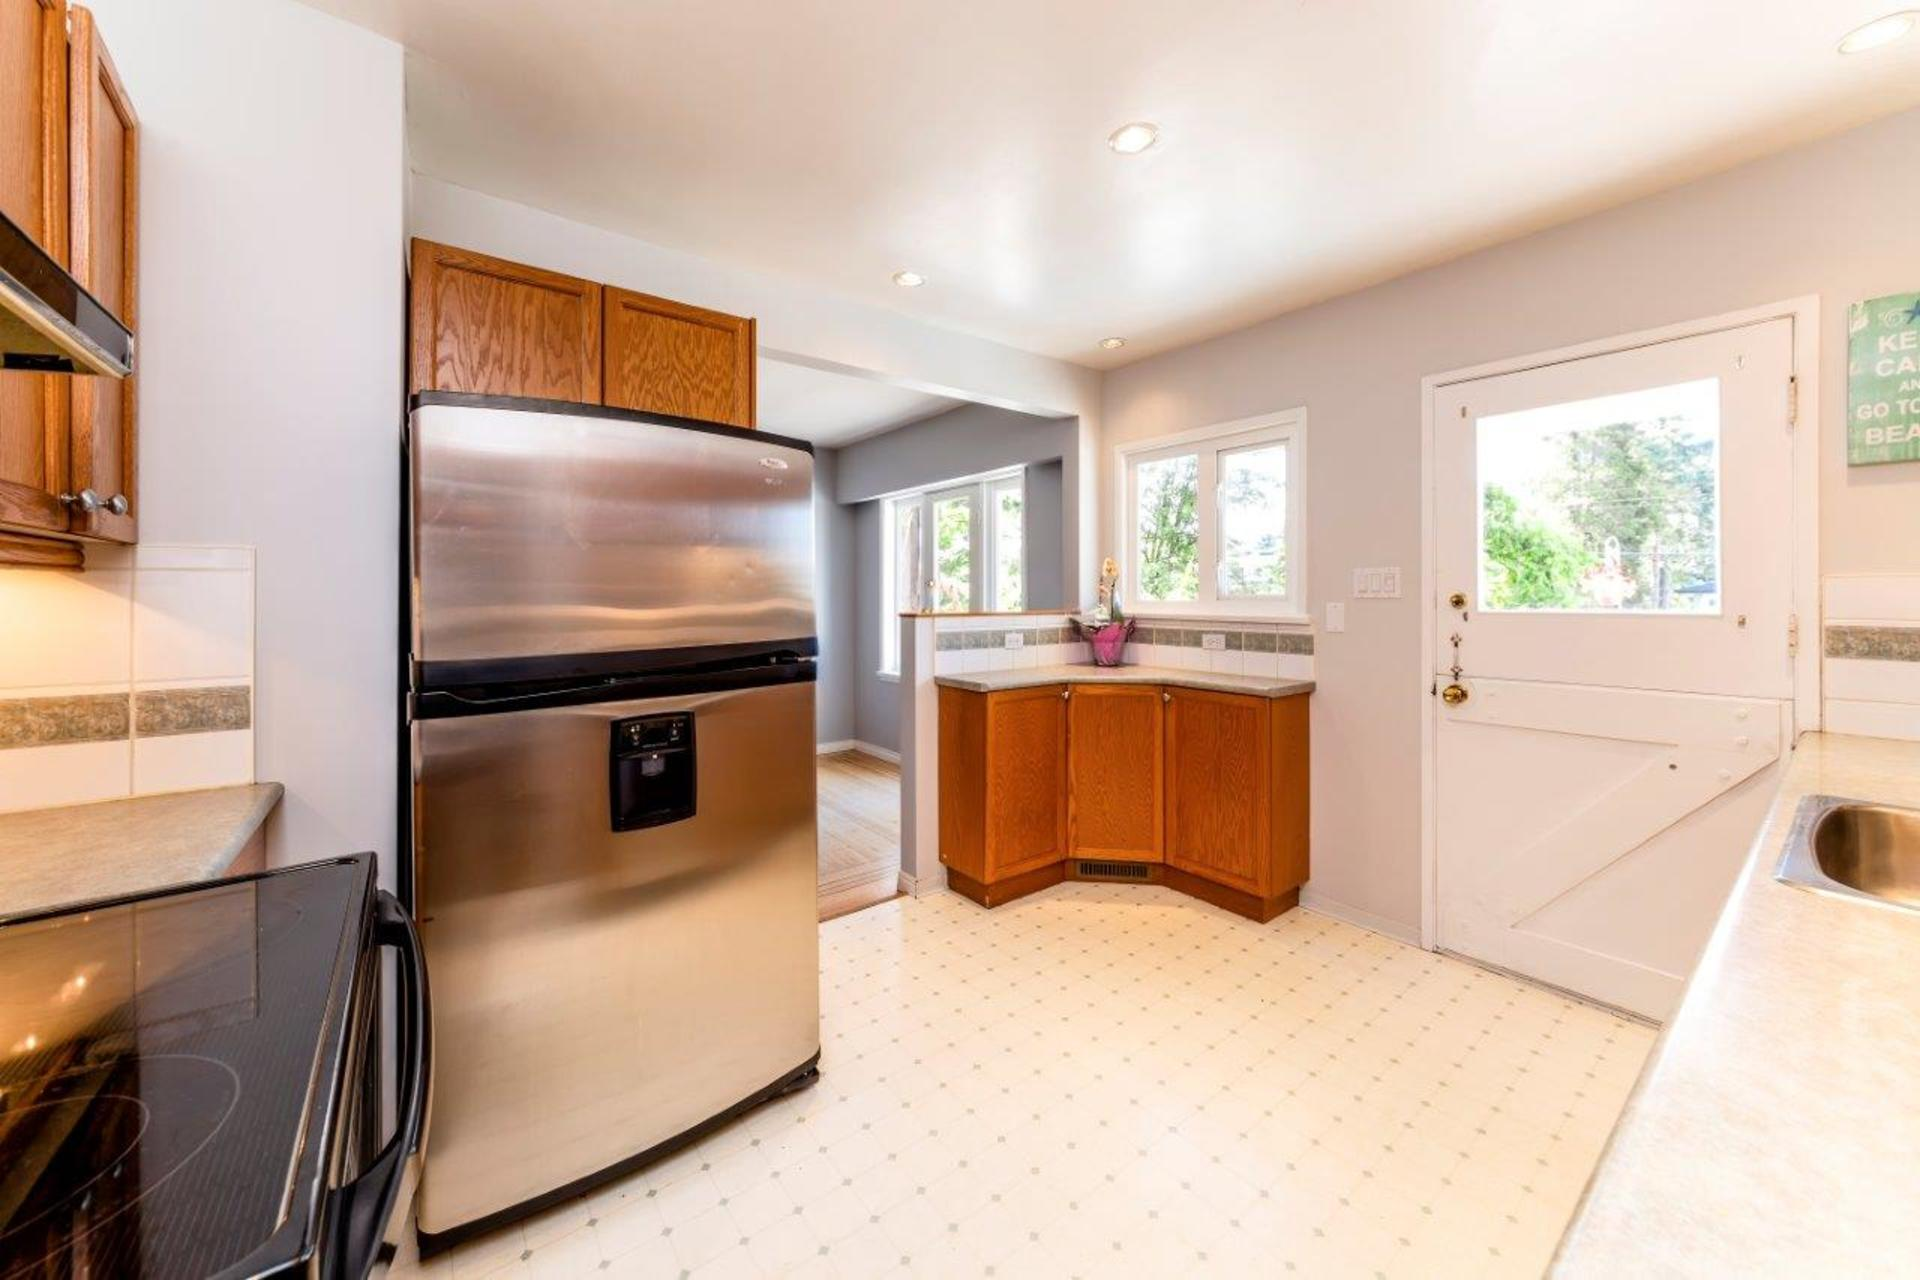 419w26-23 at 419 West 26th Street, Upper Lonsdale, North Vancouver